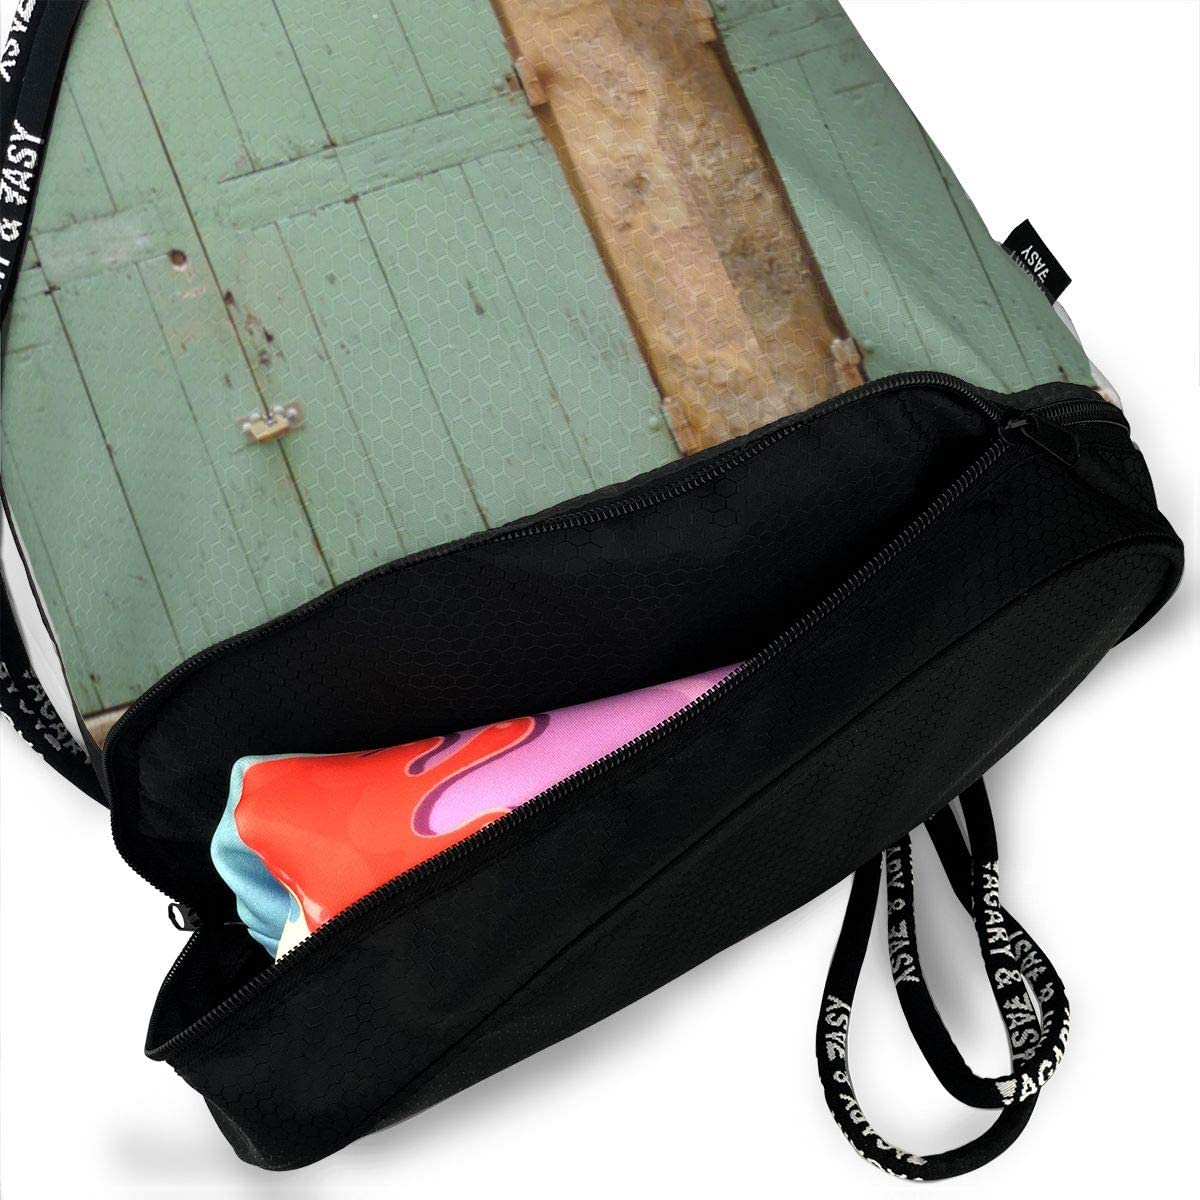 Behind Green Door Drawstring Backpack Sports Athletic Gym Cinch Sack String Storage Bags for Hiking Travel Beach